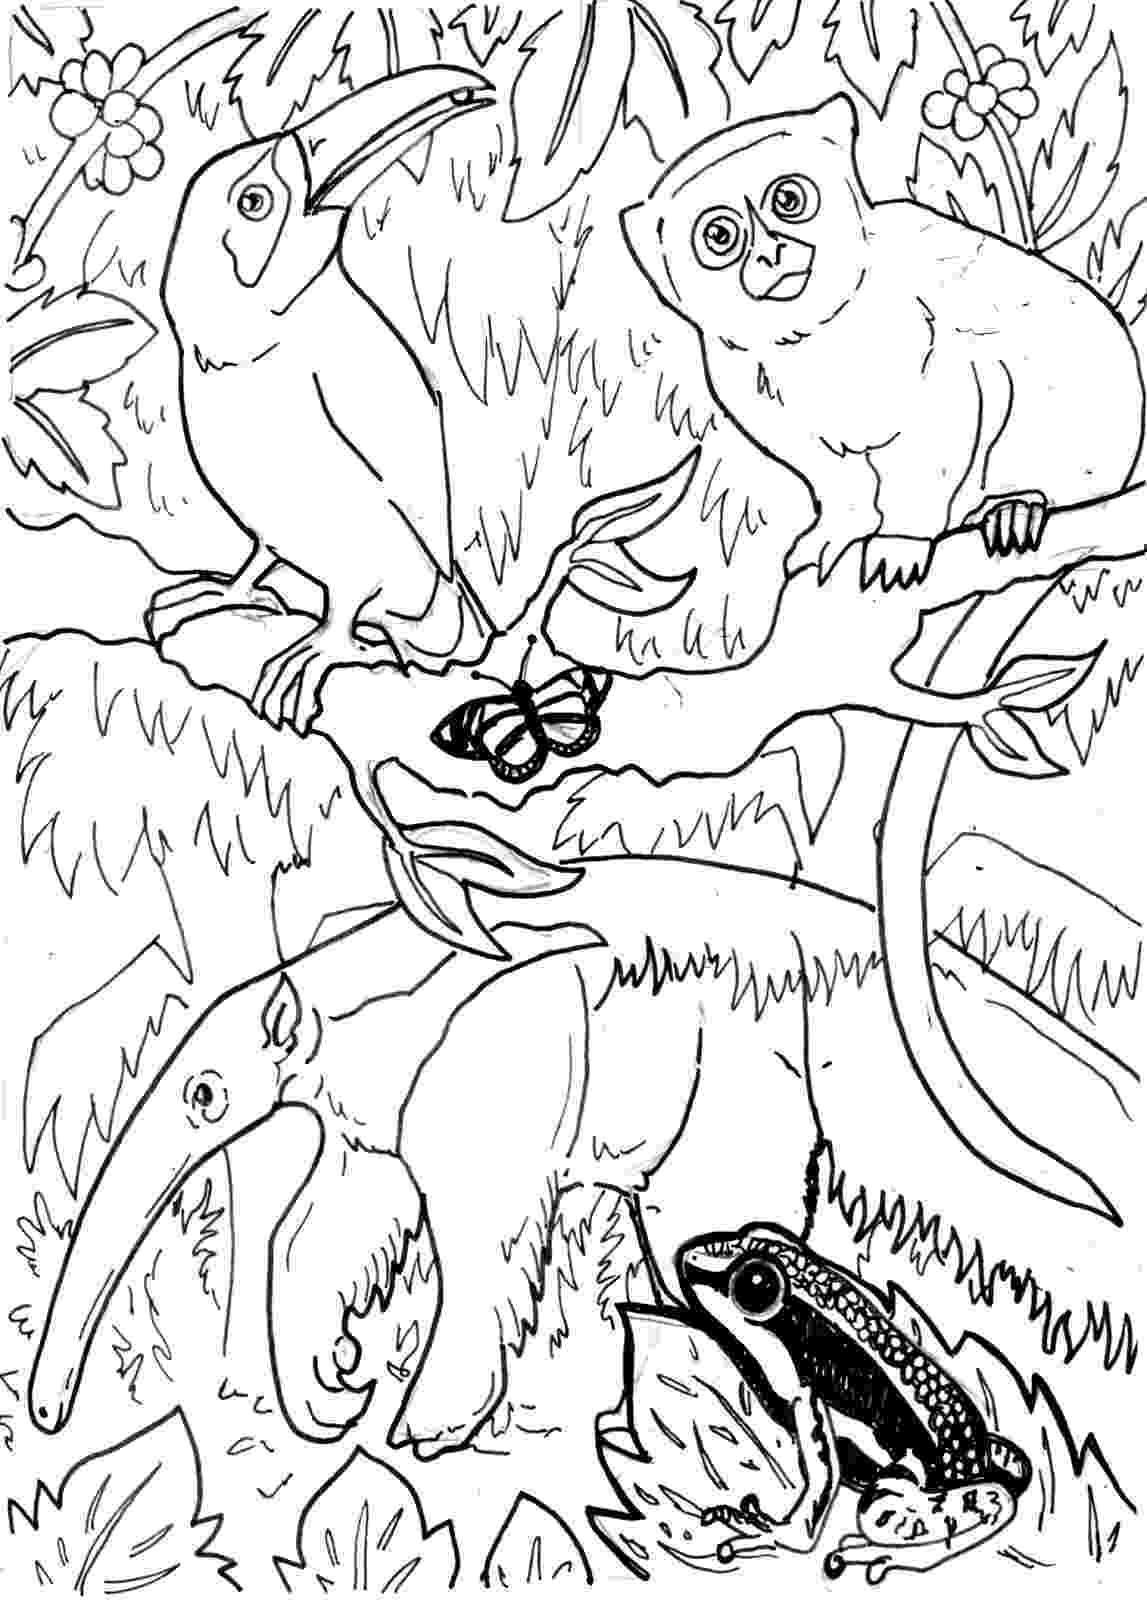 jungle animal coloring book pages jungle safari coloring pages download and print for free pages jungle coloring animal book